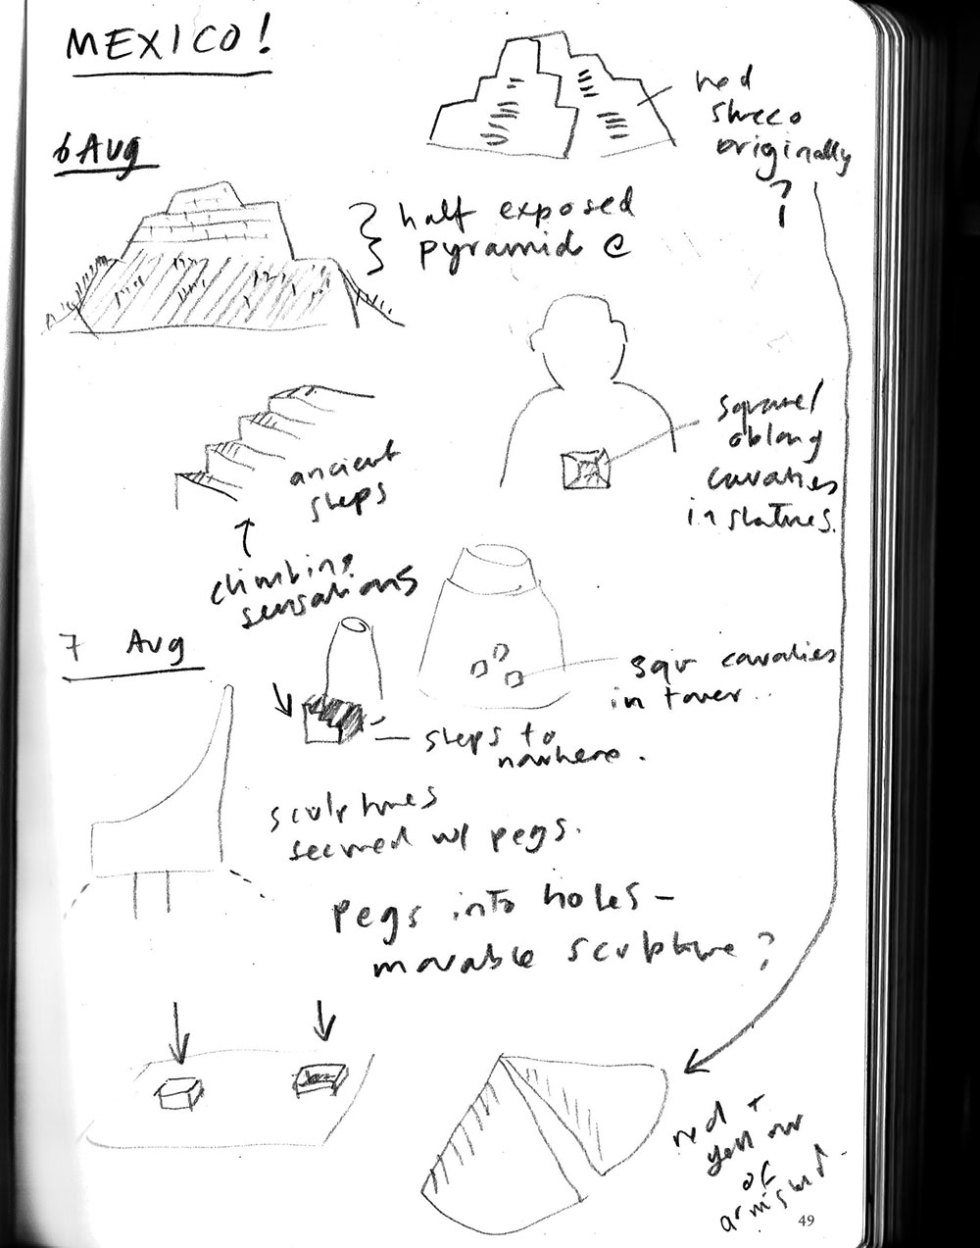 Notebook sketches from Mexico - 7 Aug